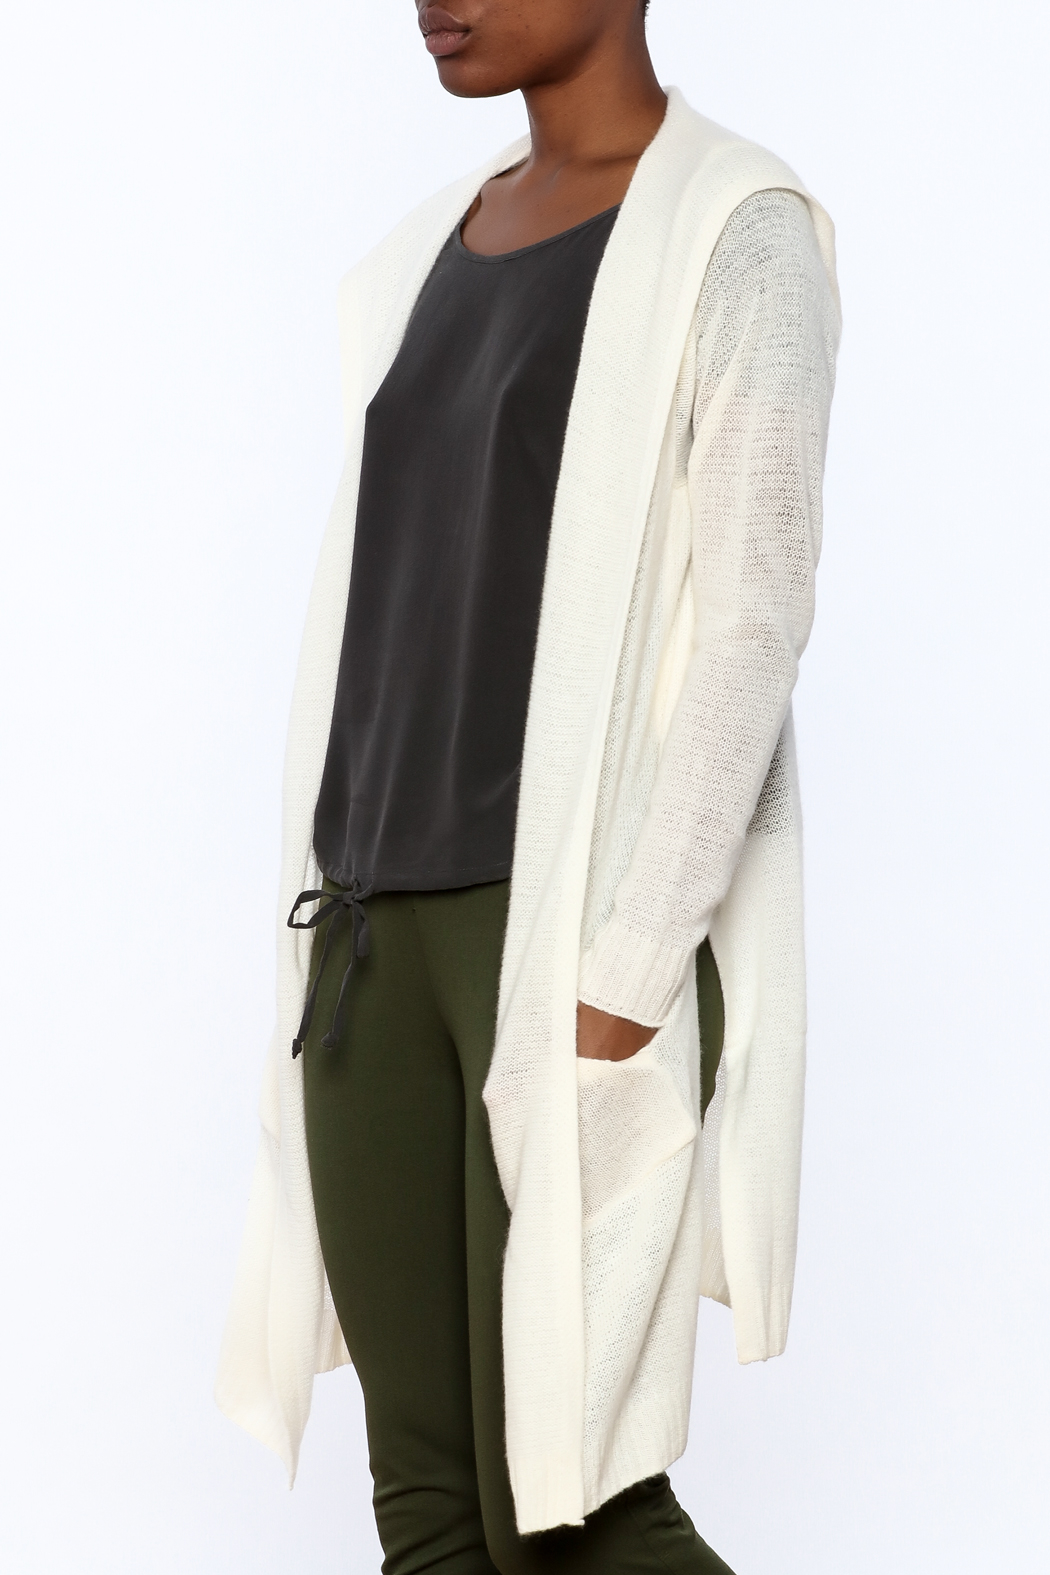 White + Warren White Cashmere Cardigan - Front Cropped Image